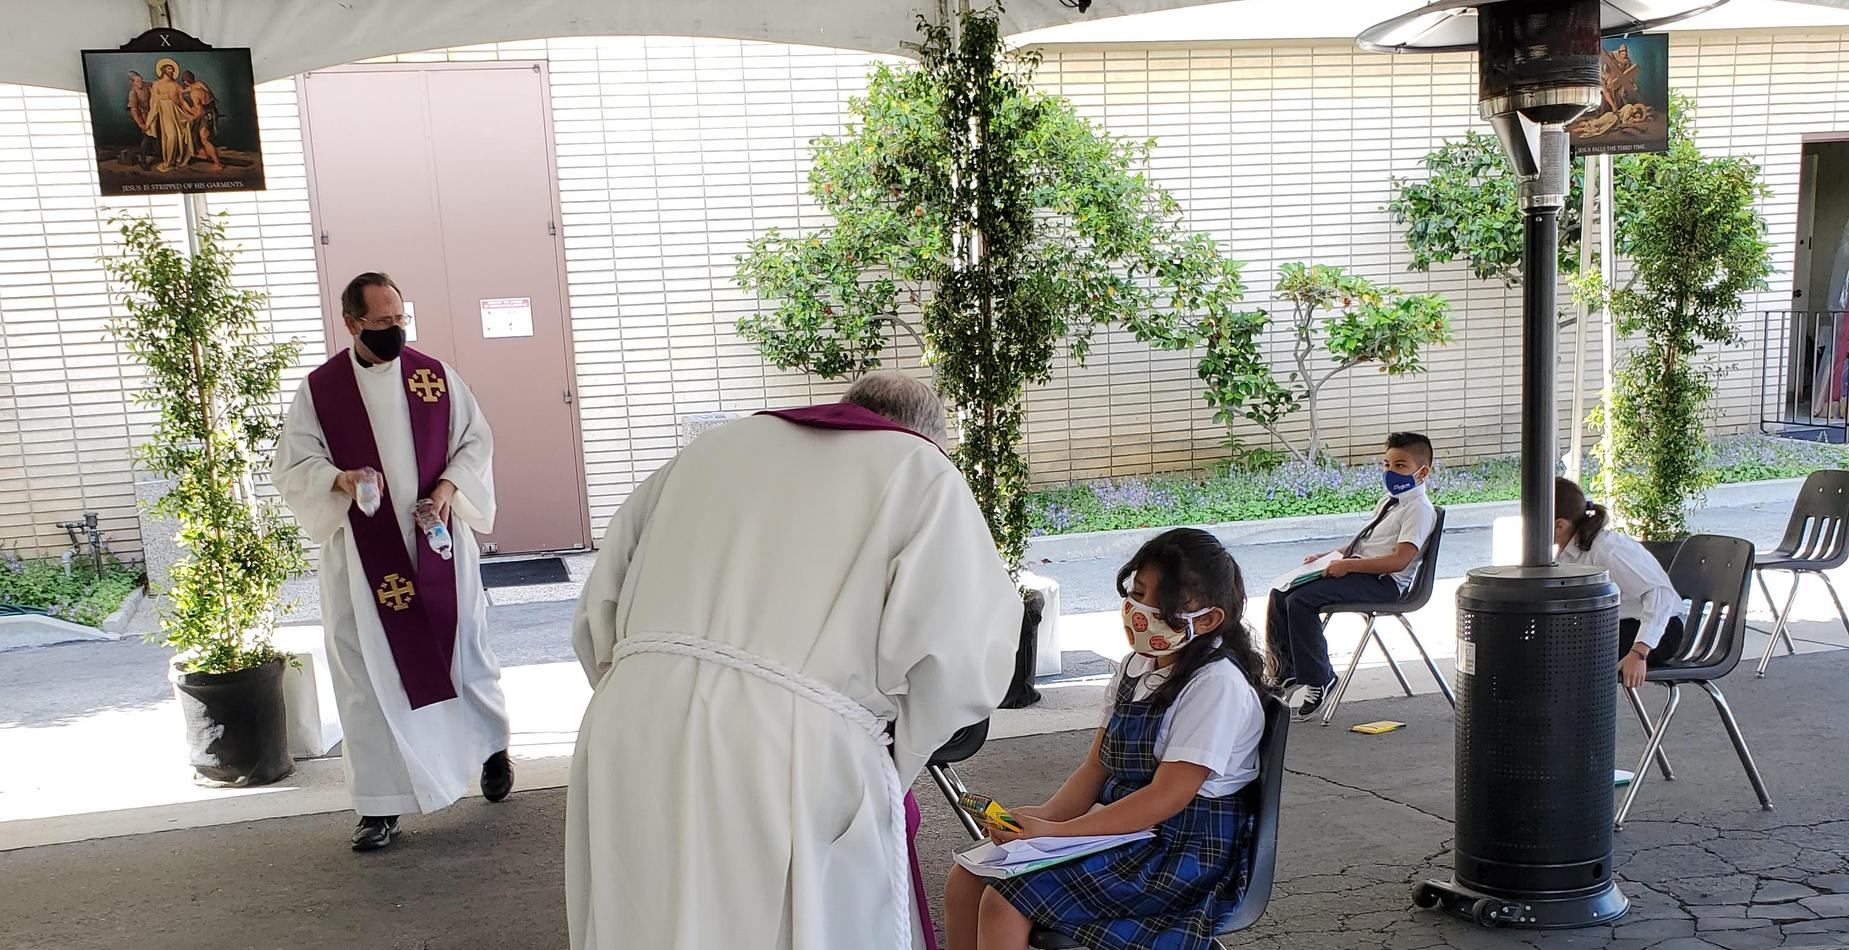 Our priests helping our second graders during their first reconciliation